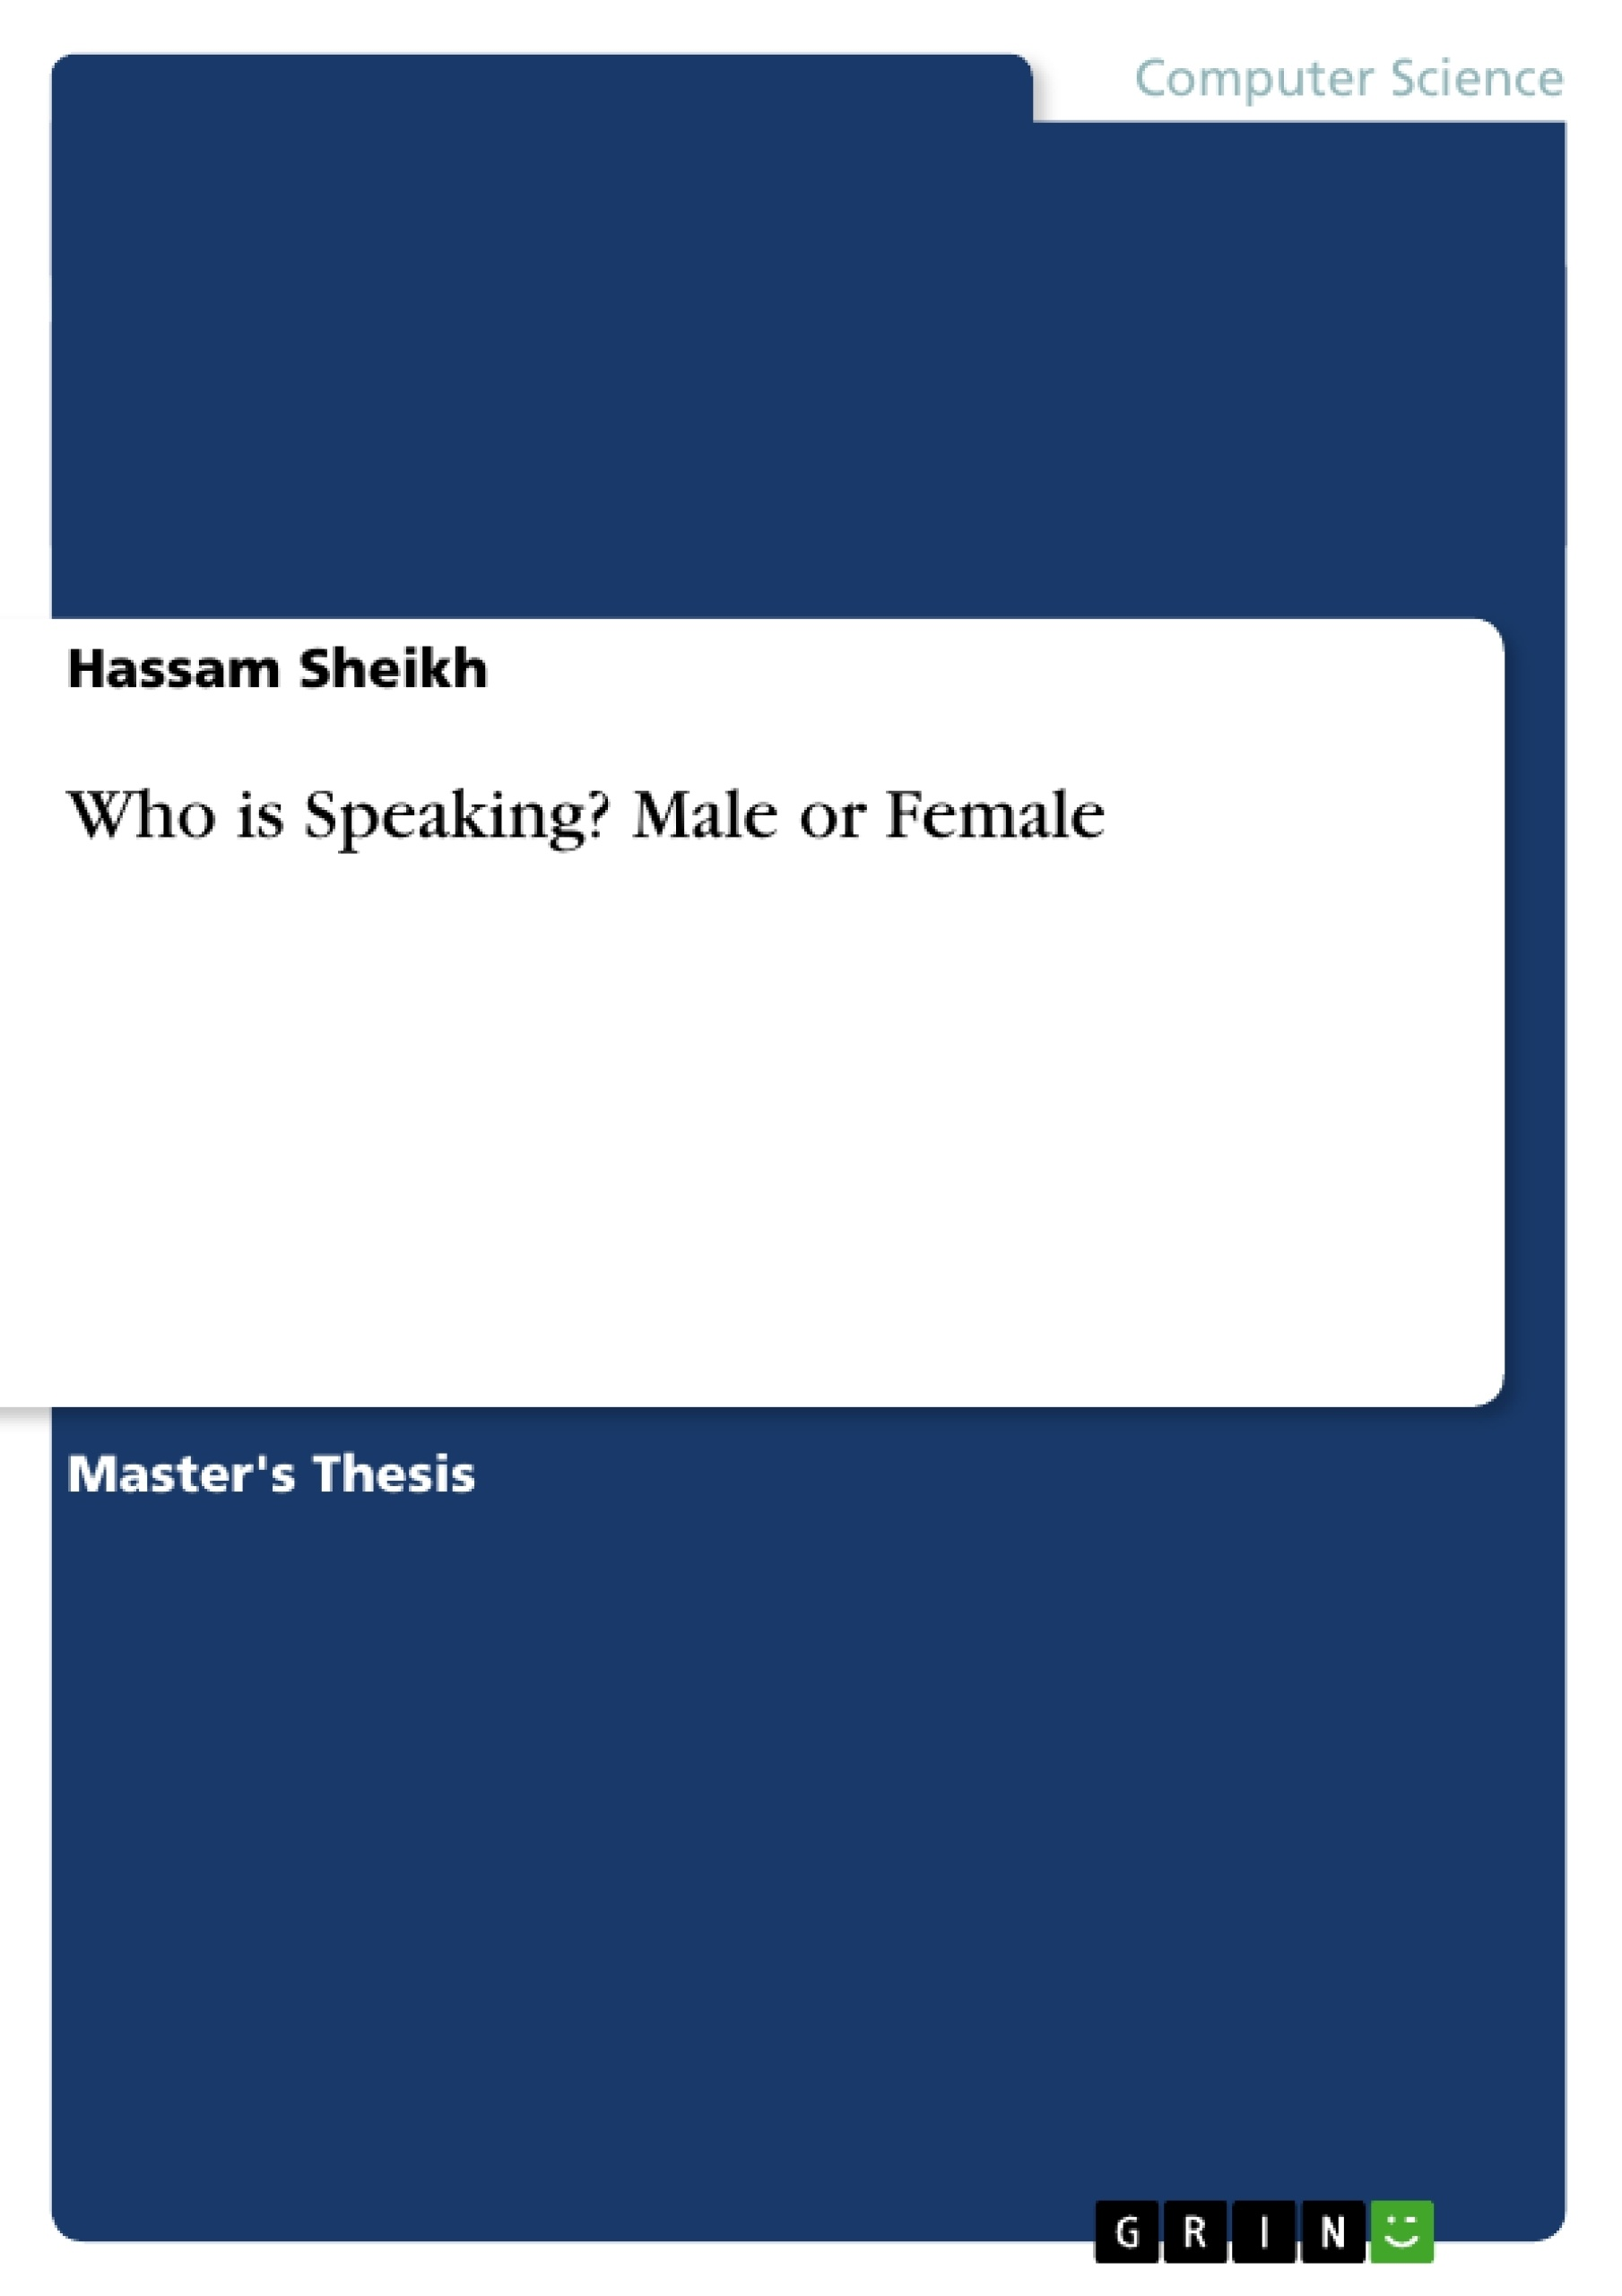 Title: Who is Speaking? Male or Female